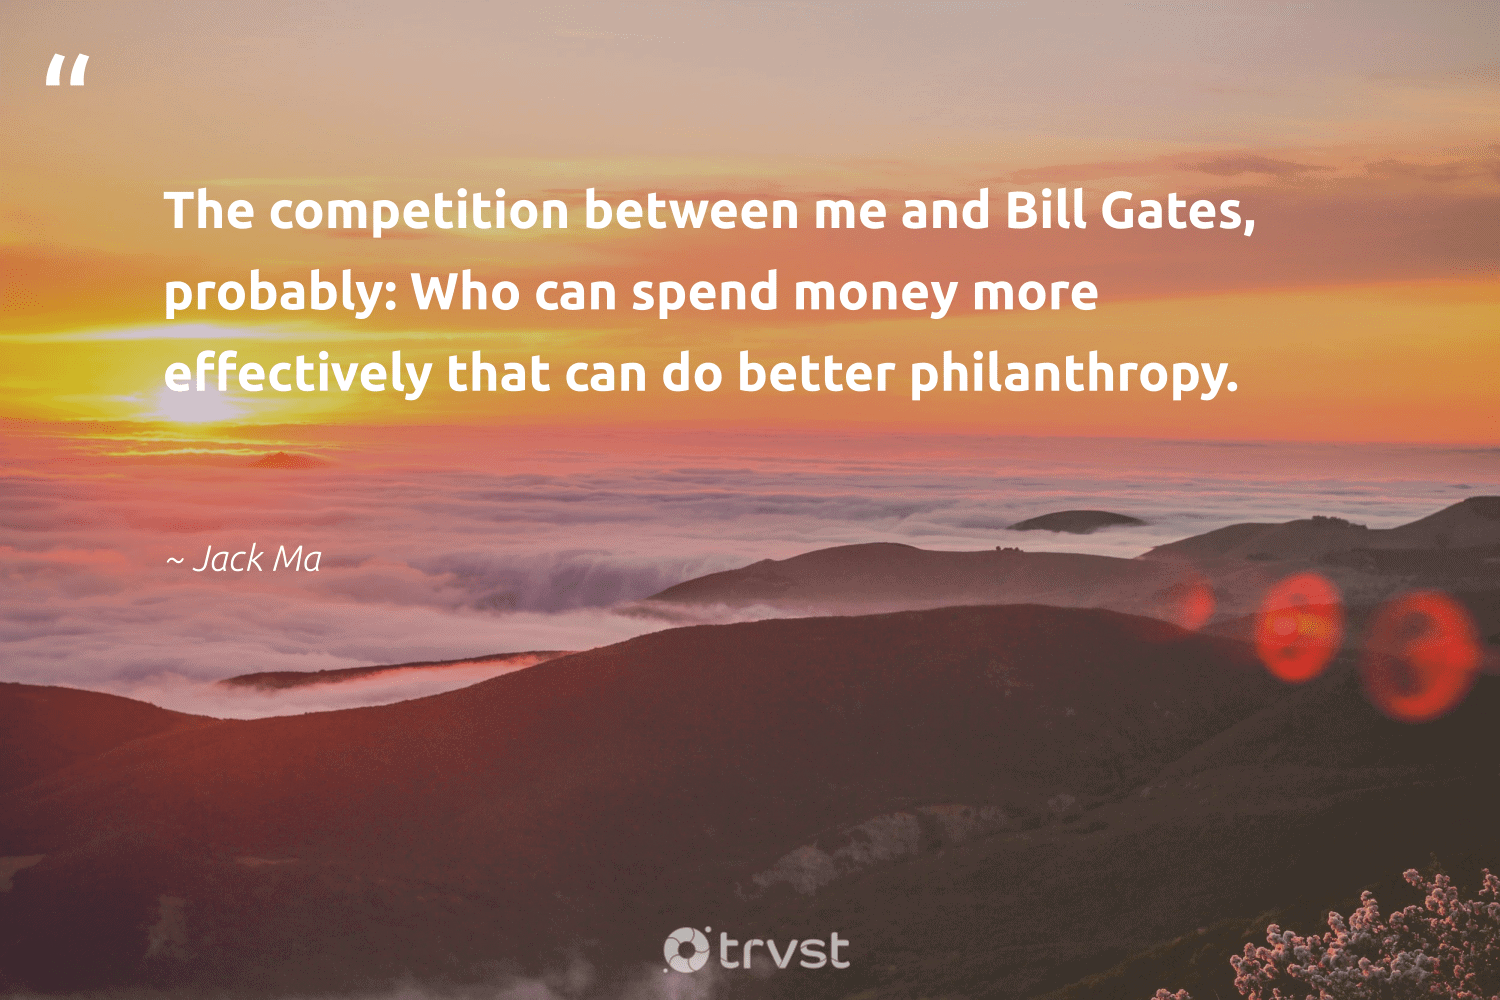 """""""The competition between me and Bill Gates, probably: Who can spend money more effectively that can do better philanthropy.""""  - Jack Ma #trvst #quotes #philanthropy #philanthropic #togetherwecan #giveforthefuture #collectiveaction #changemakers #itscooltobekind #socialimpact #beinspired #thinkgreen"""